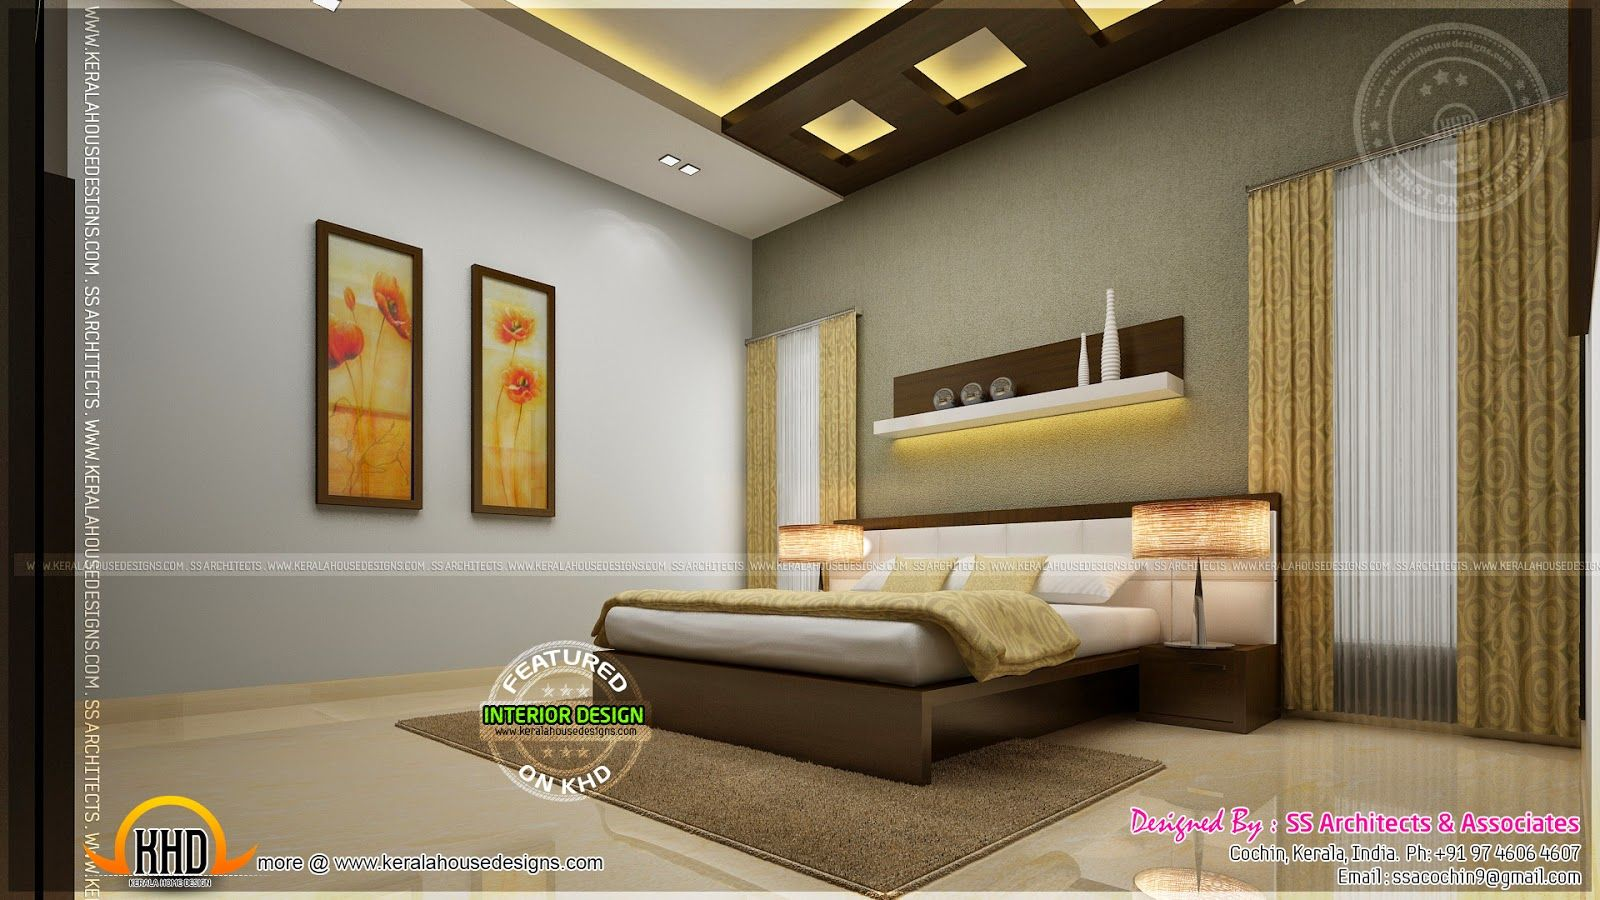 Indian master bedroom interior design google search saravanan bella vista pinterest Master bedroom designs pictures